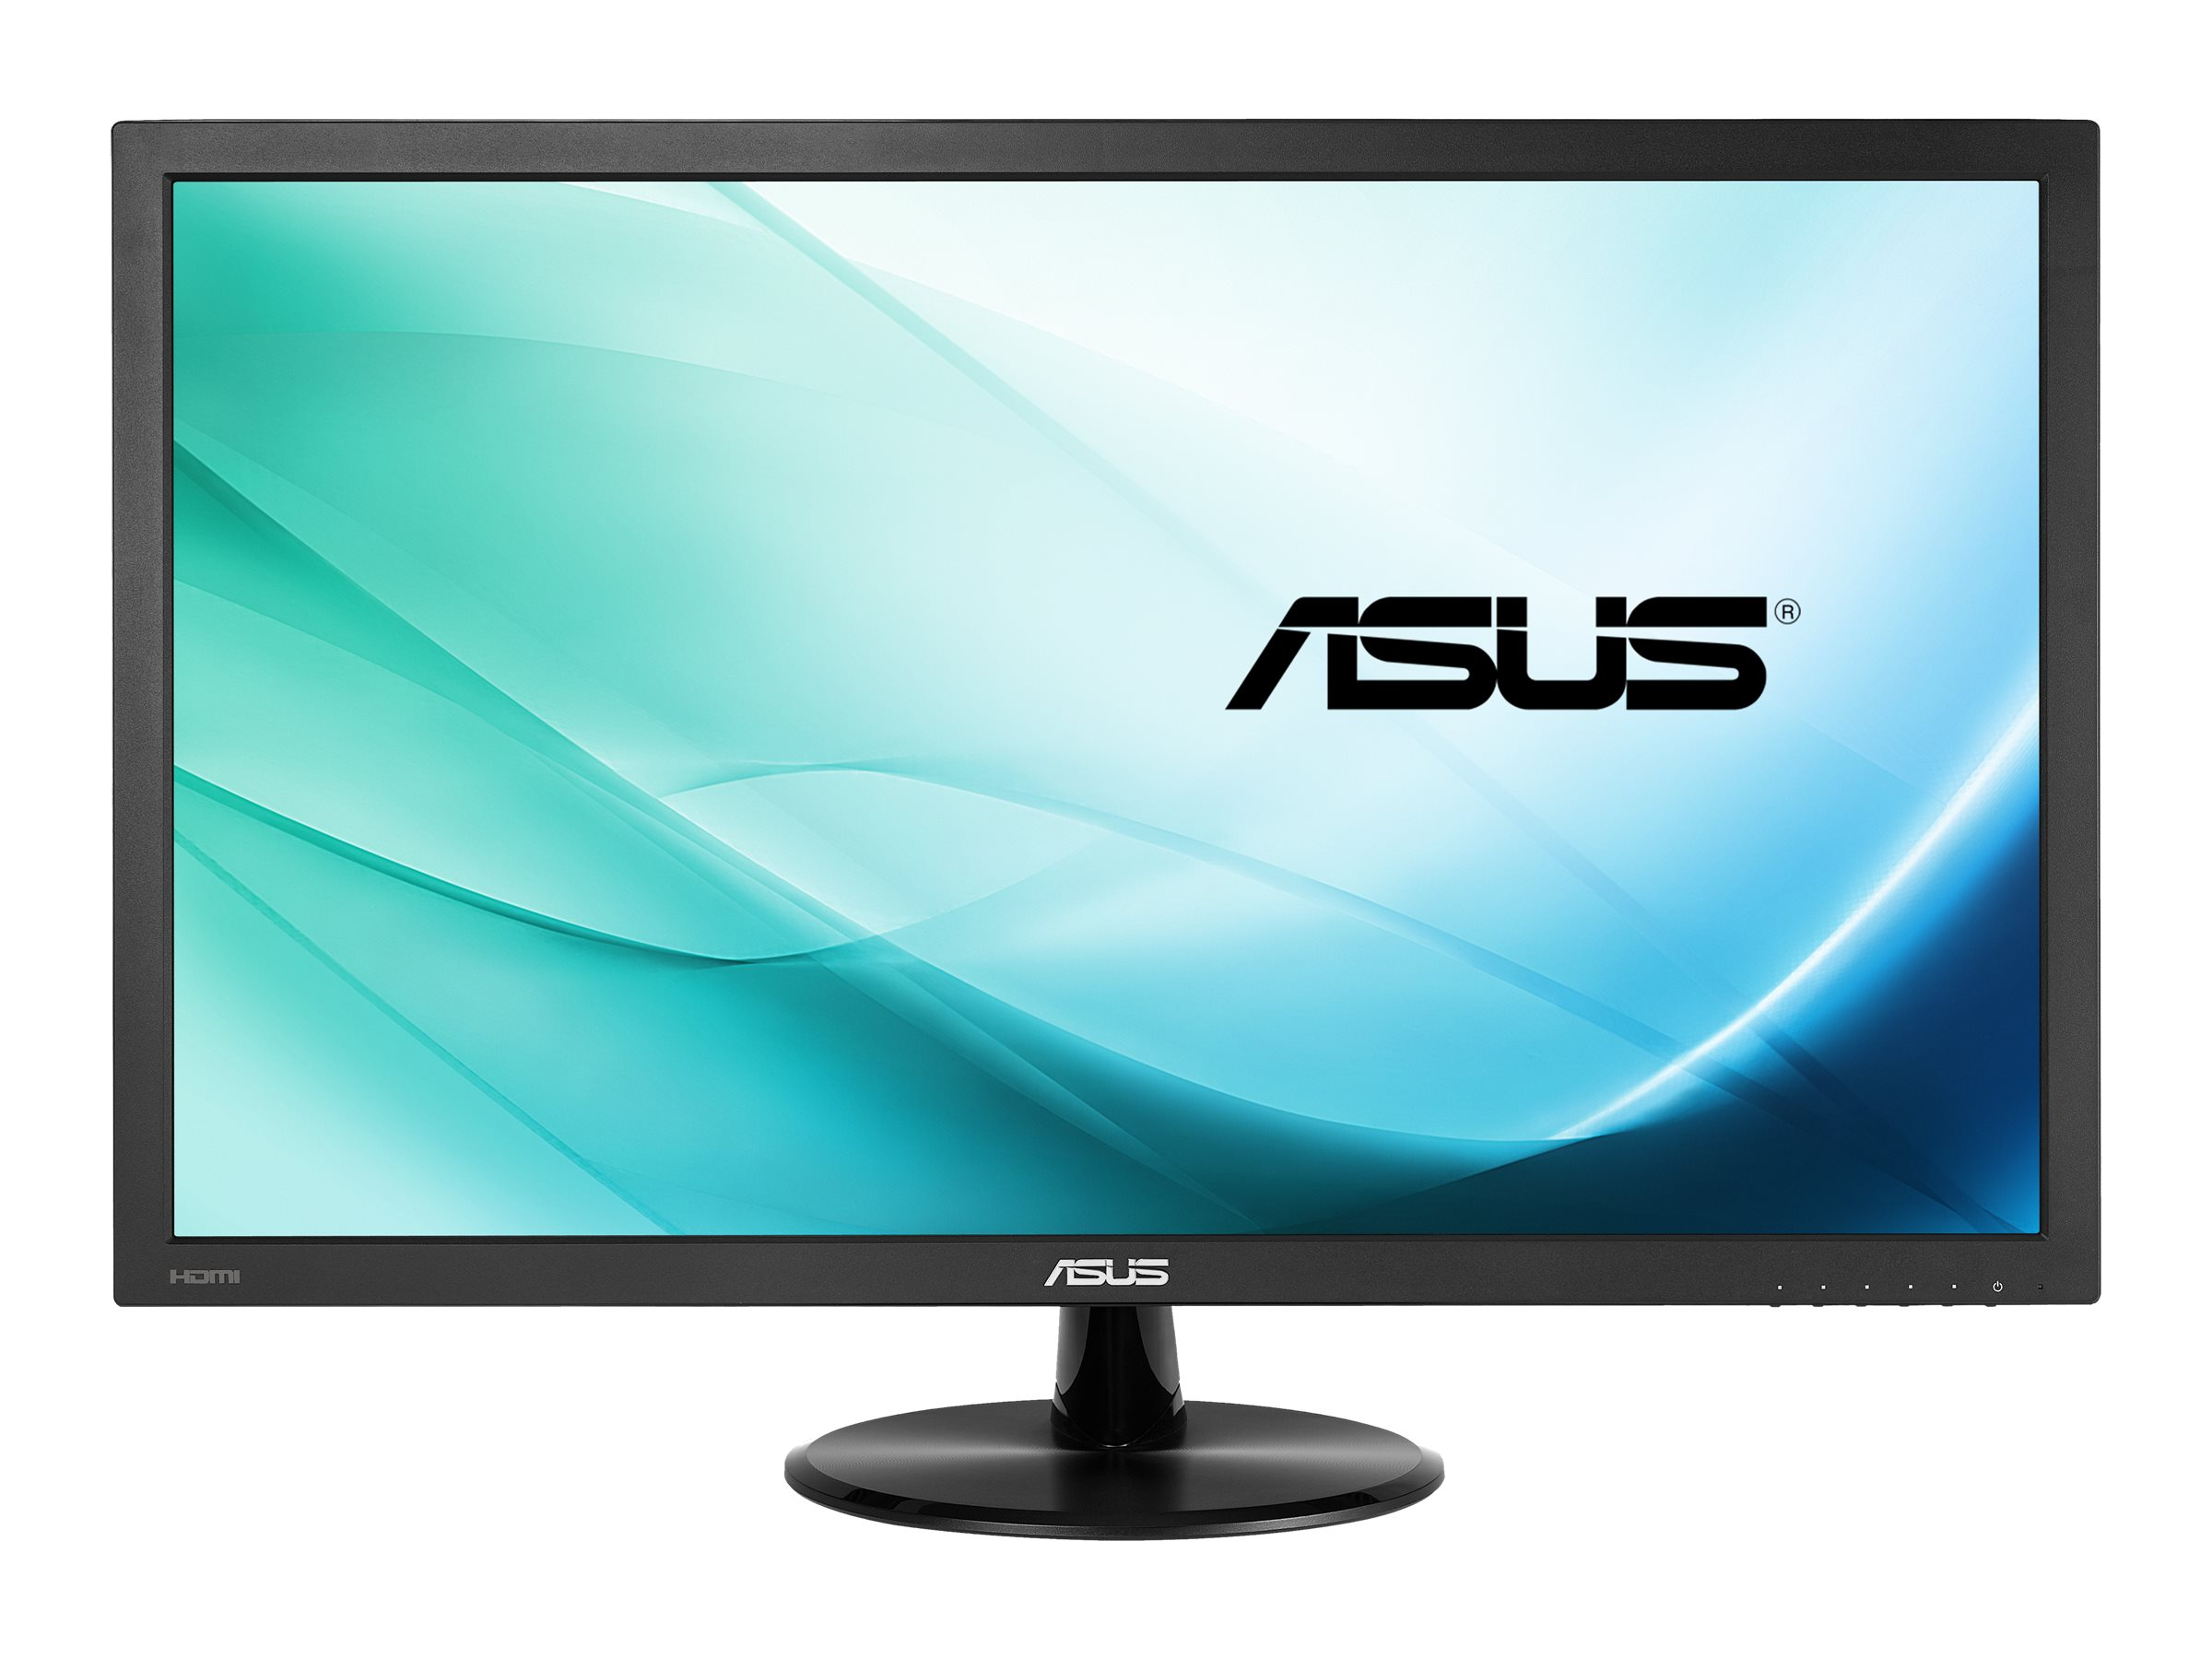 ASUS VP228H (Voltage: AC 120/230 V (50/60 Hz))